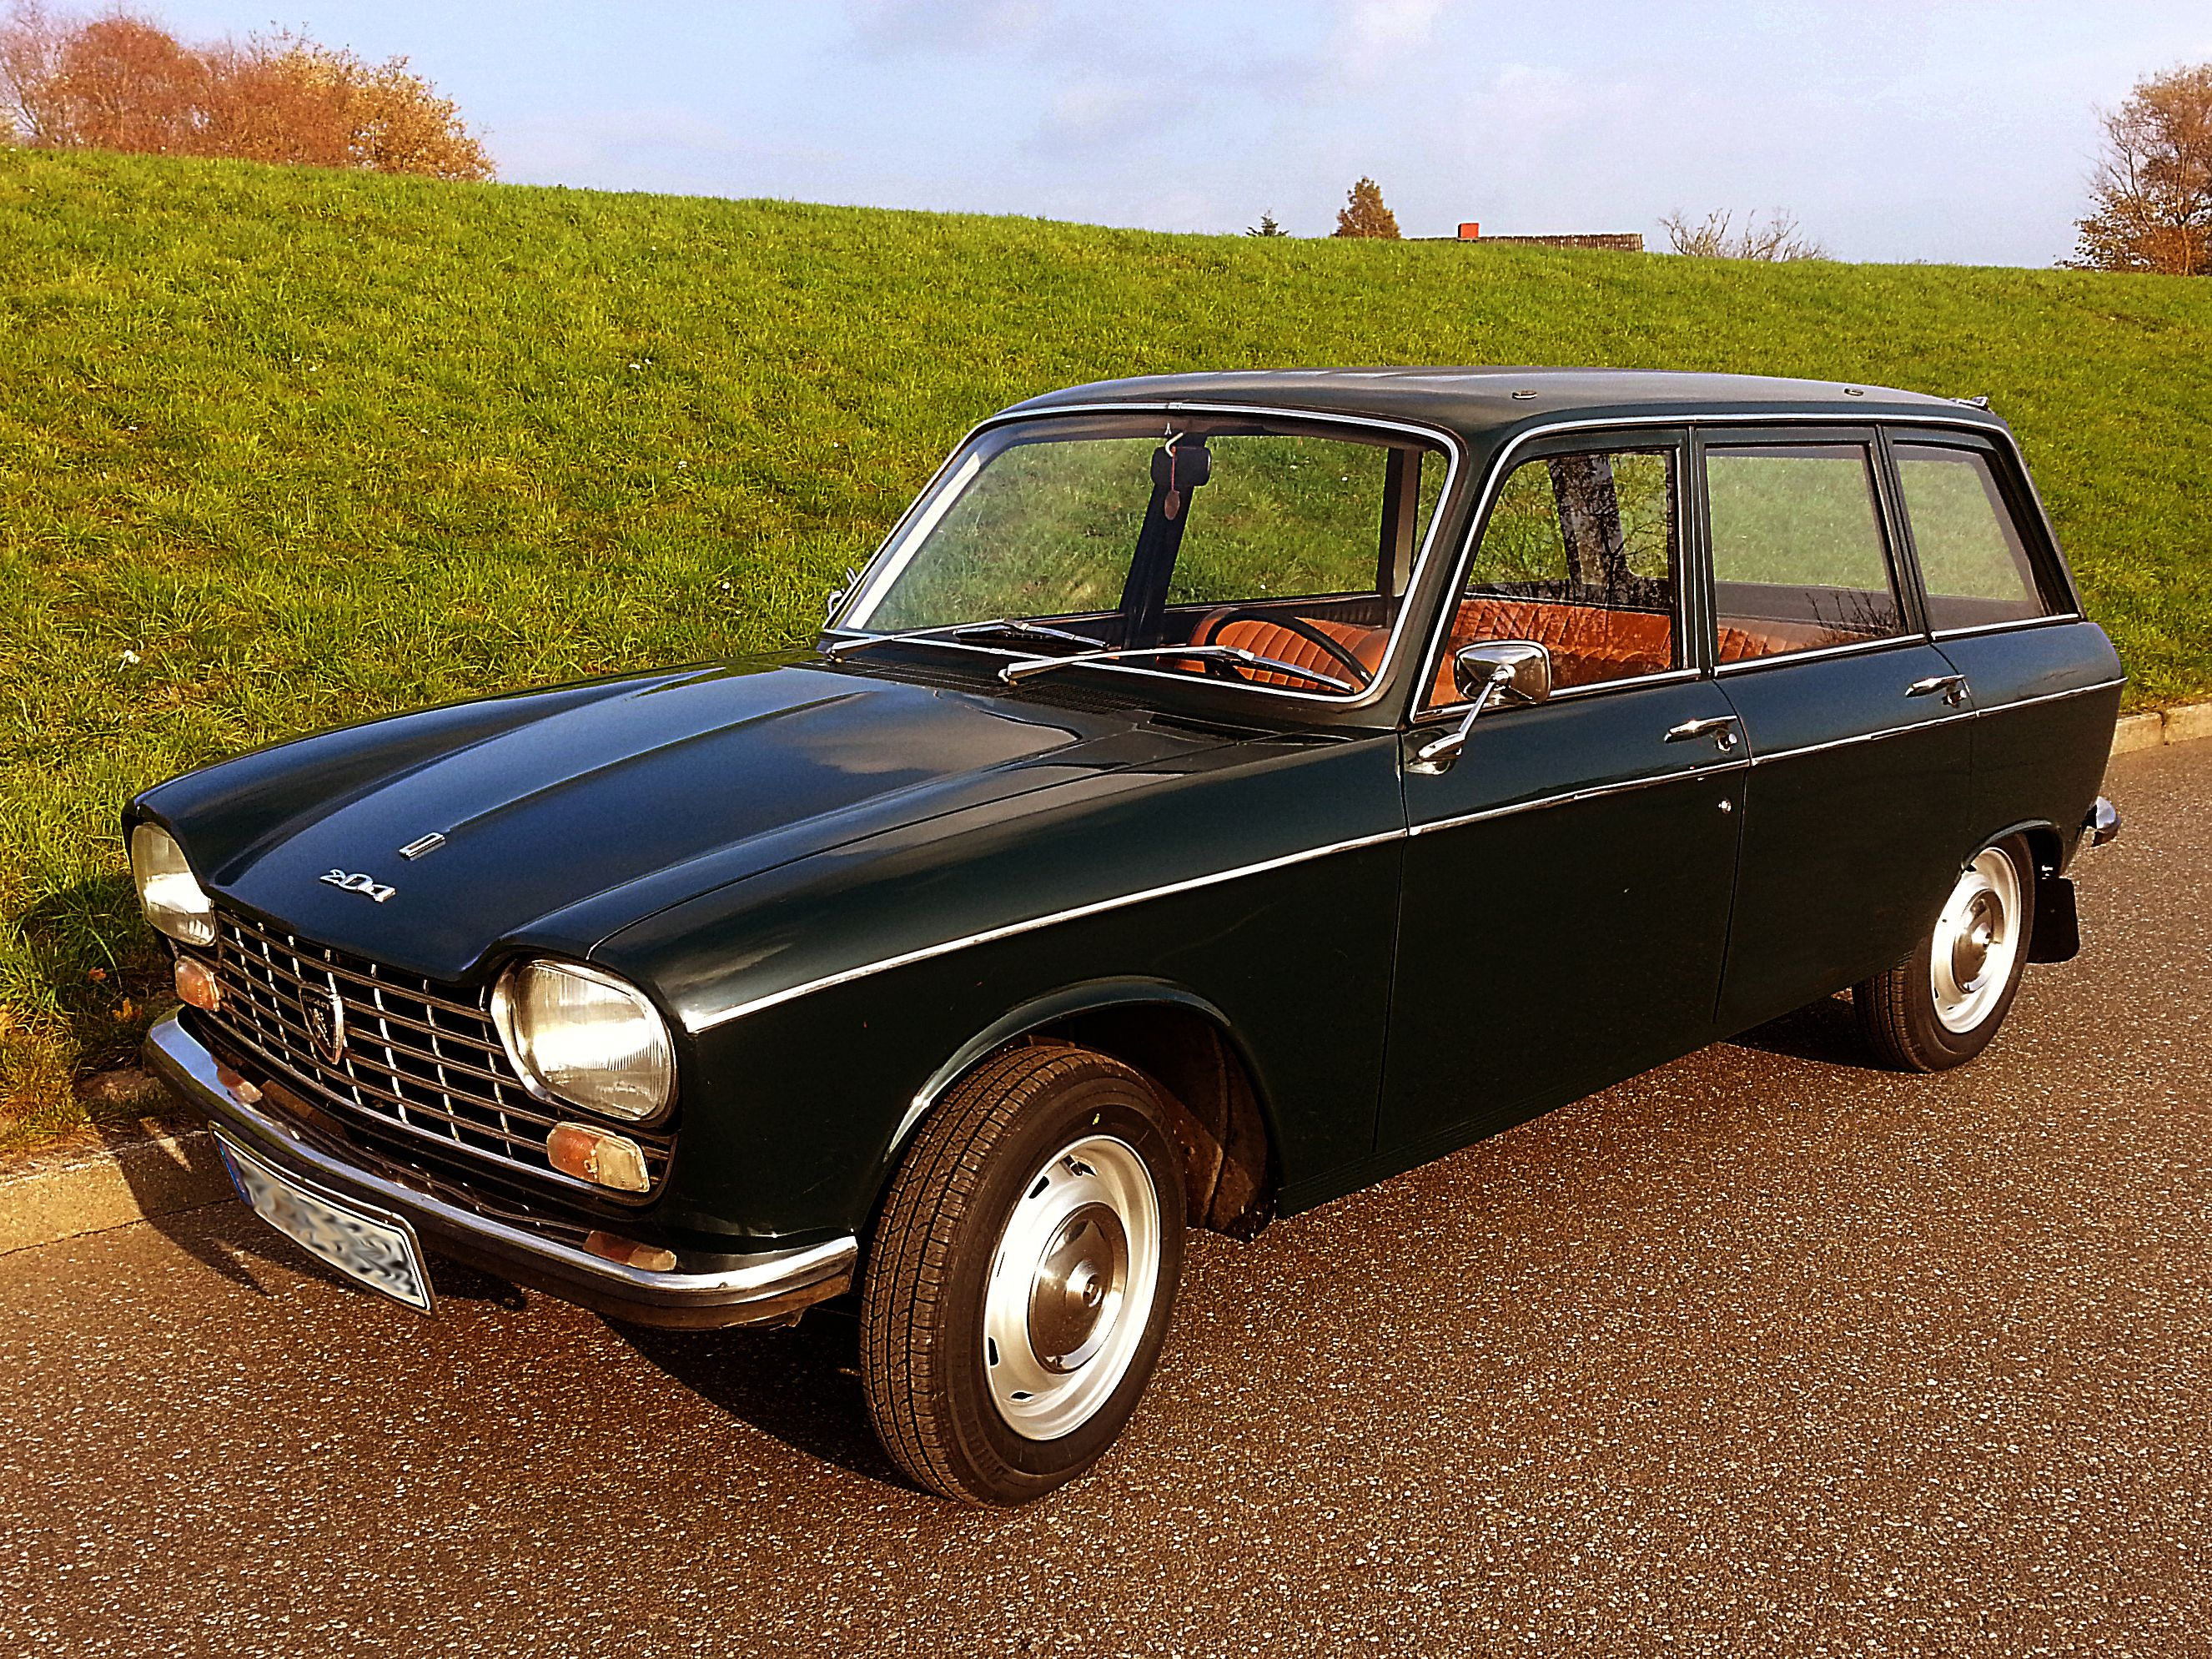 peugeot 204 break 1969 hamburg peugeot pinterest hamburg and peugeot. Black Bedroom Furniture Sets. Home Design Ideas